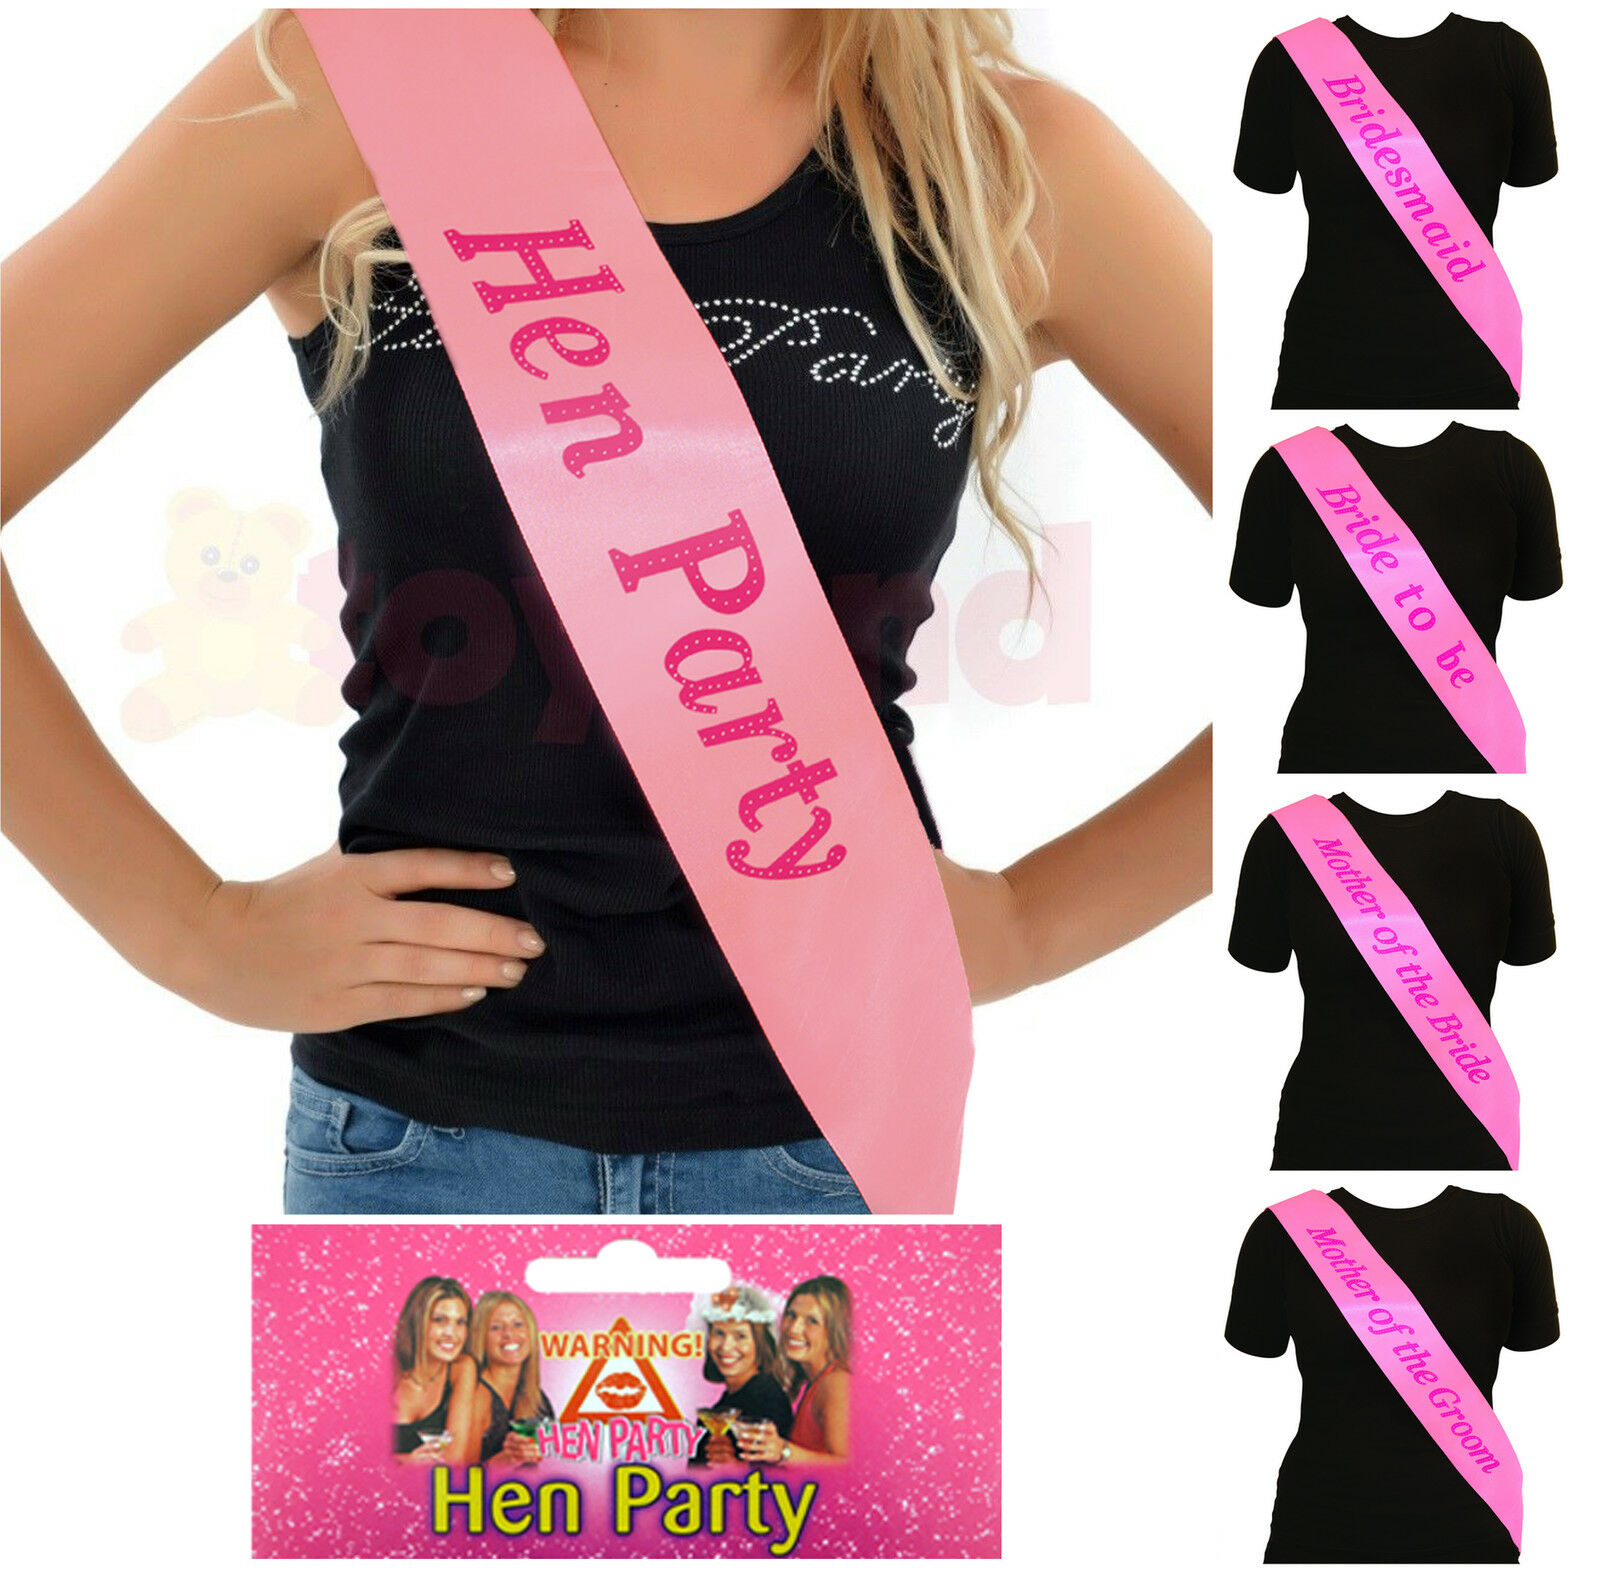 PINK HEN PARTY SASH SASHES GIRLS DO NIGHT OUT ACCESSORIES